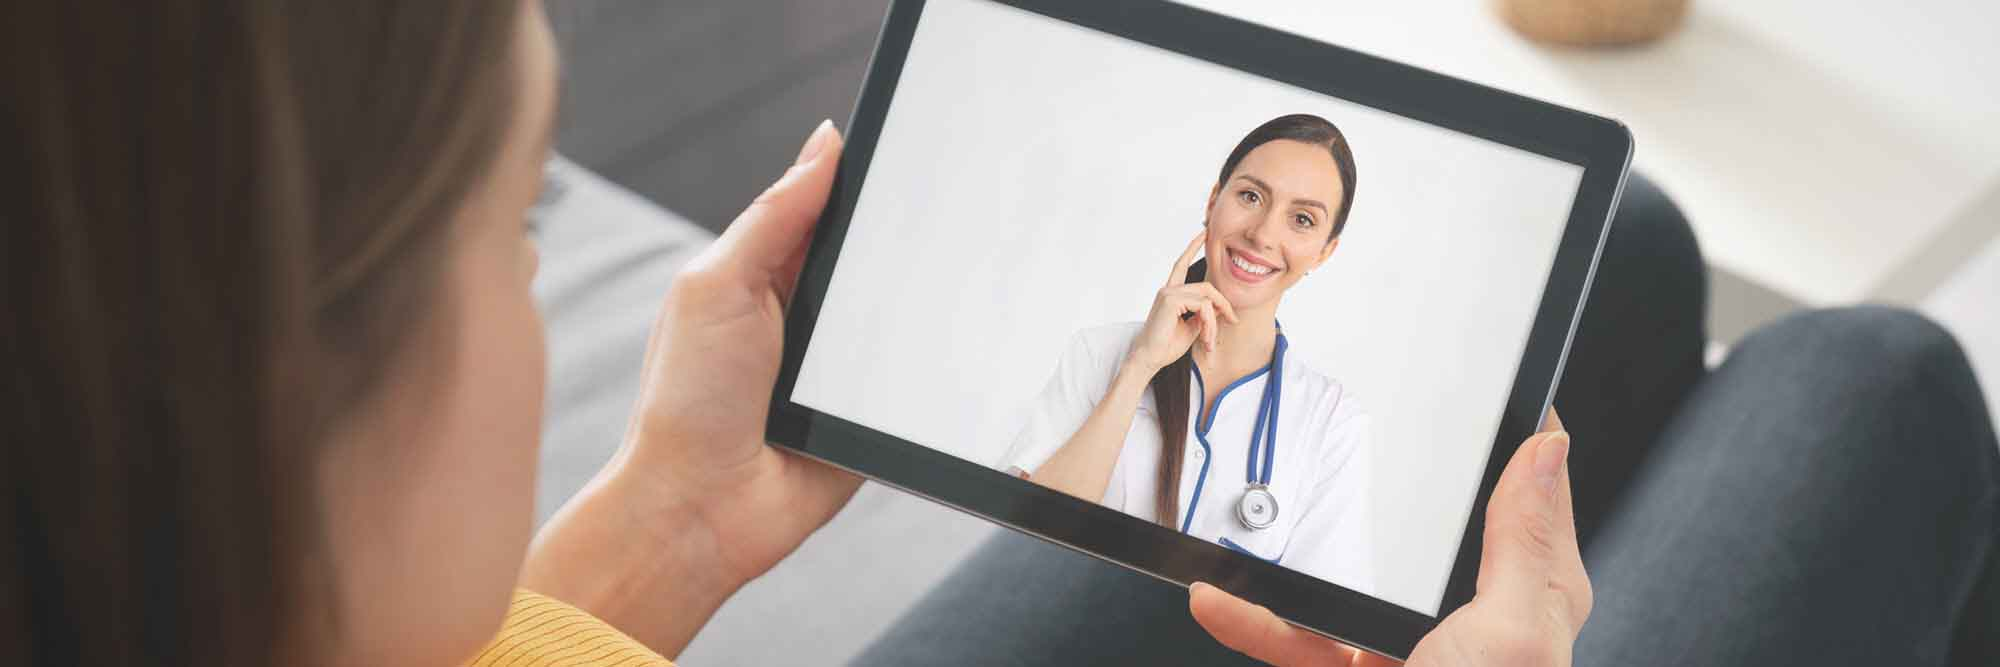 patient using telemedicine services